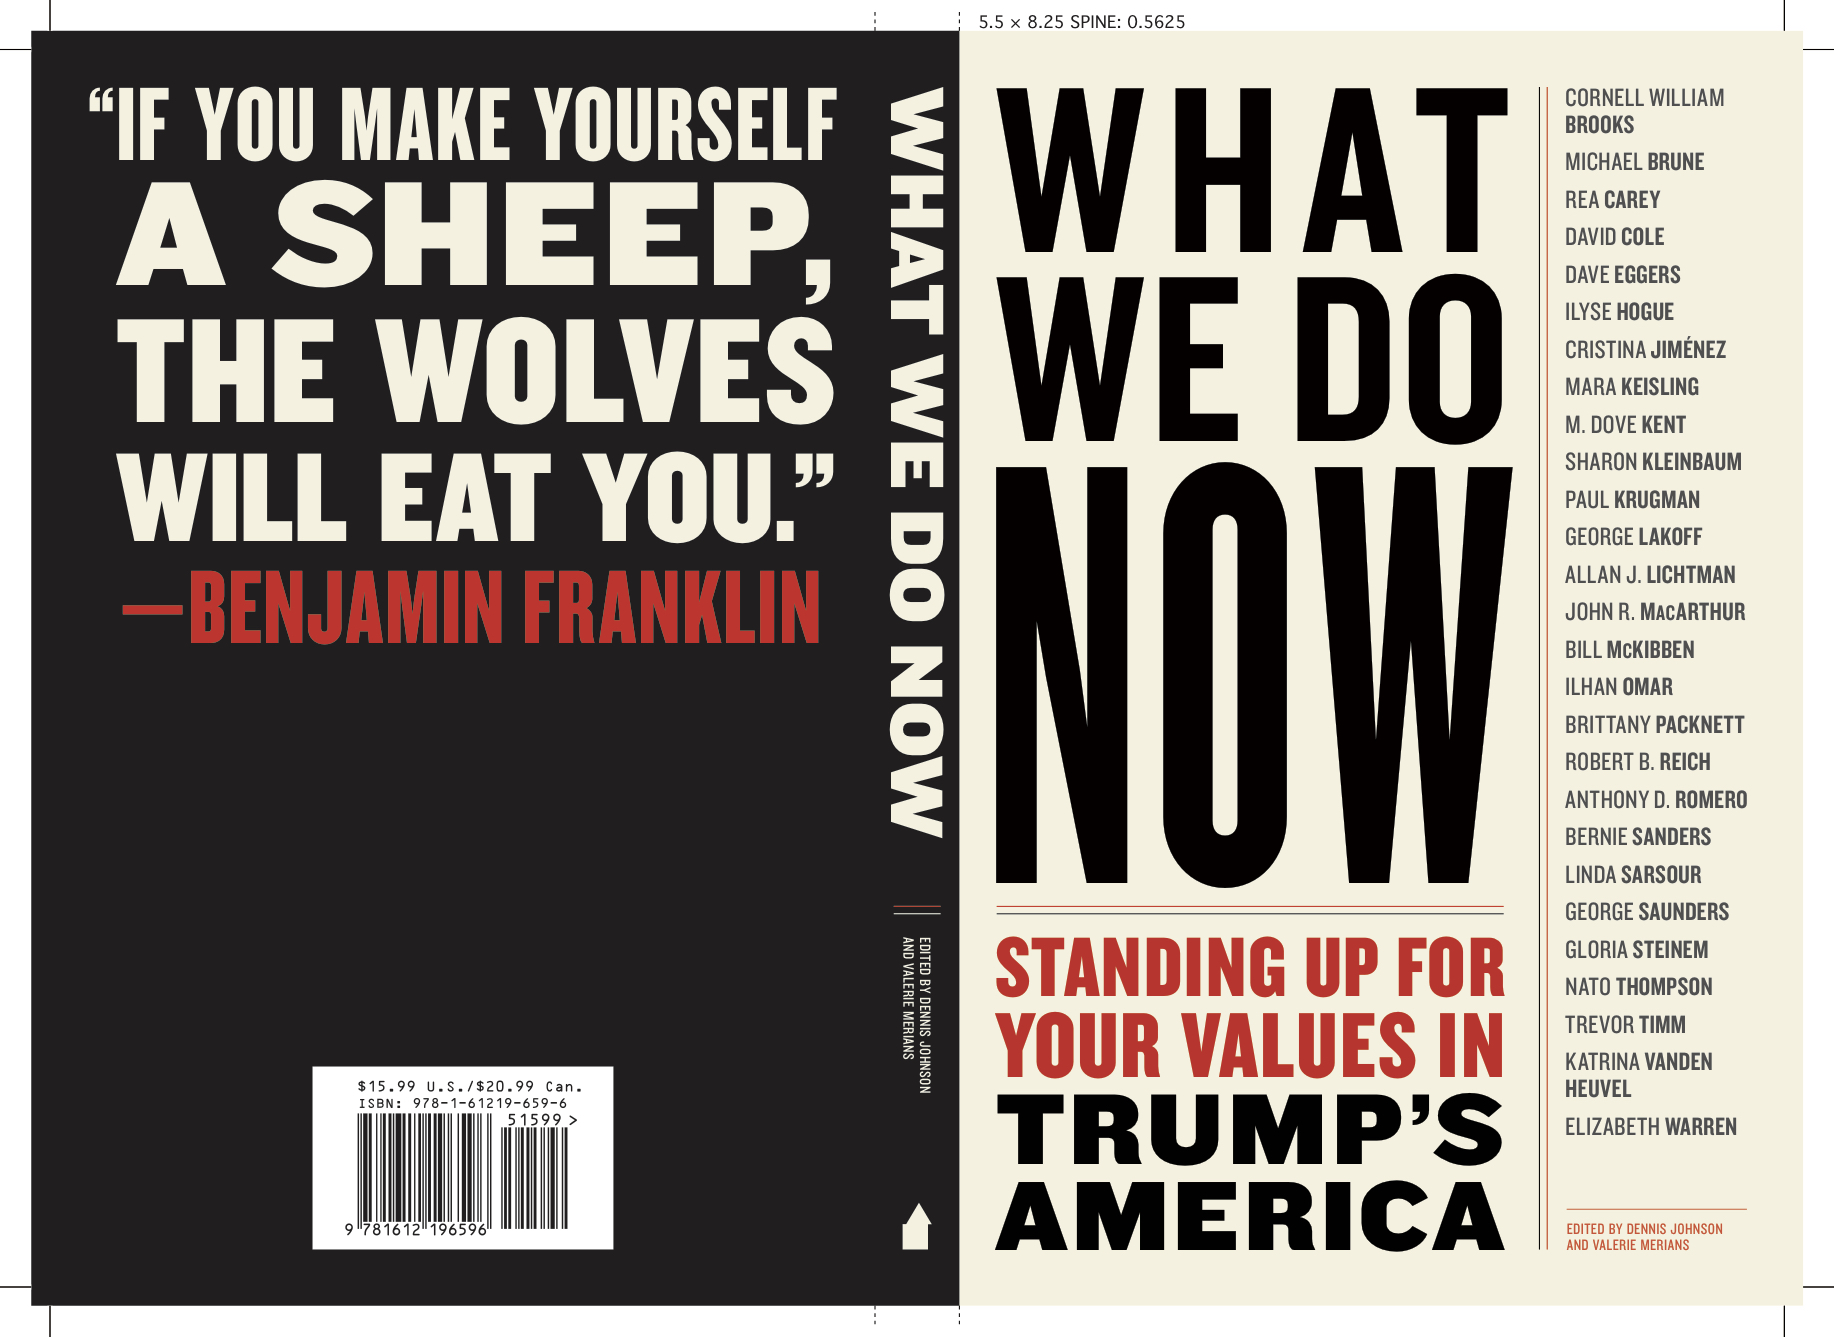 <strong>Sanders, Warren, Steinem, and Other Leading Progressives Respond to Trump in New Melville House Book Pubbing for Inauguration Day</strong>